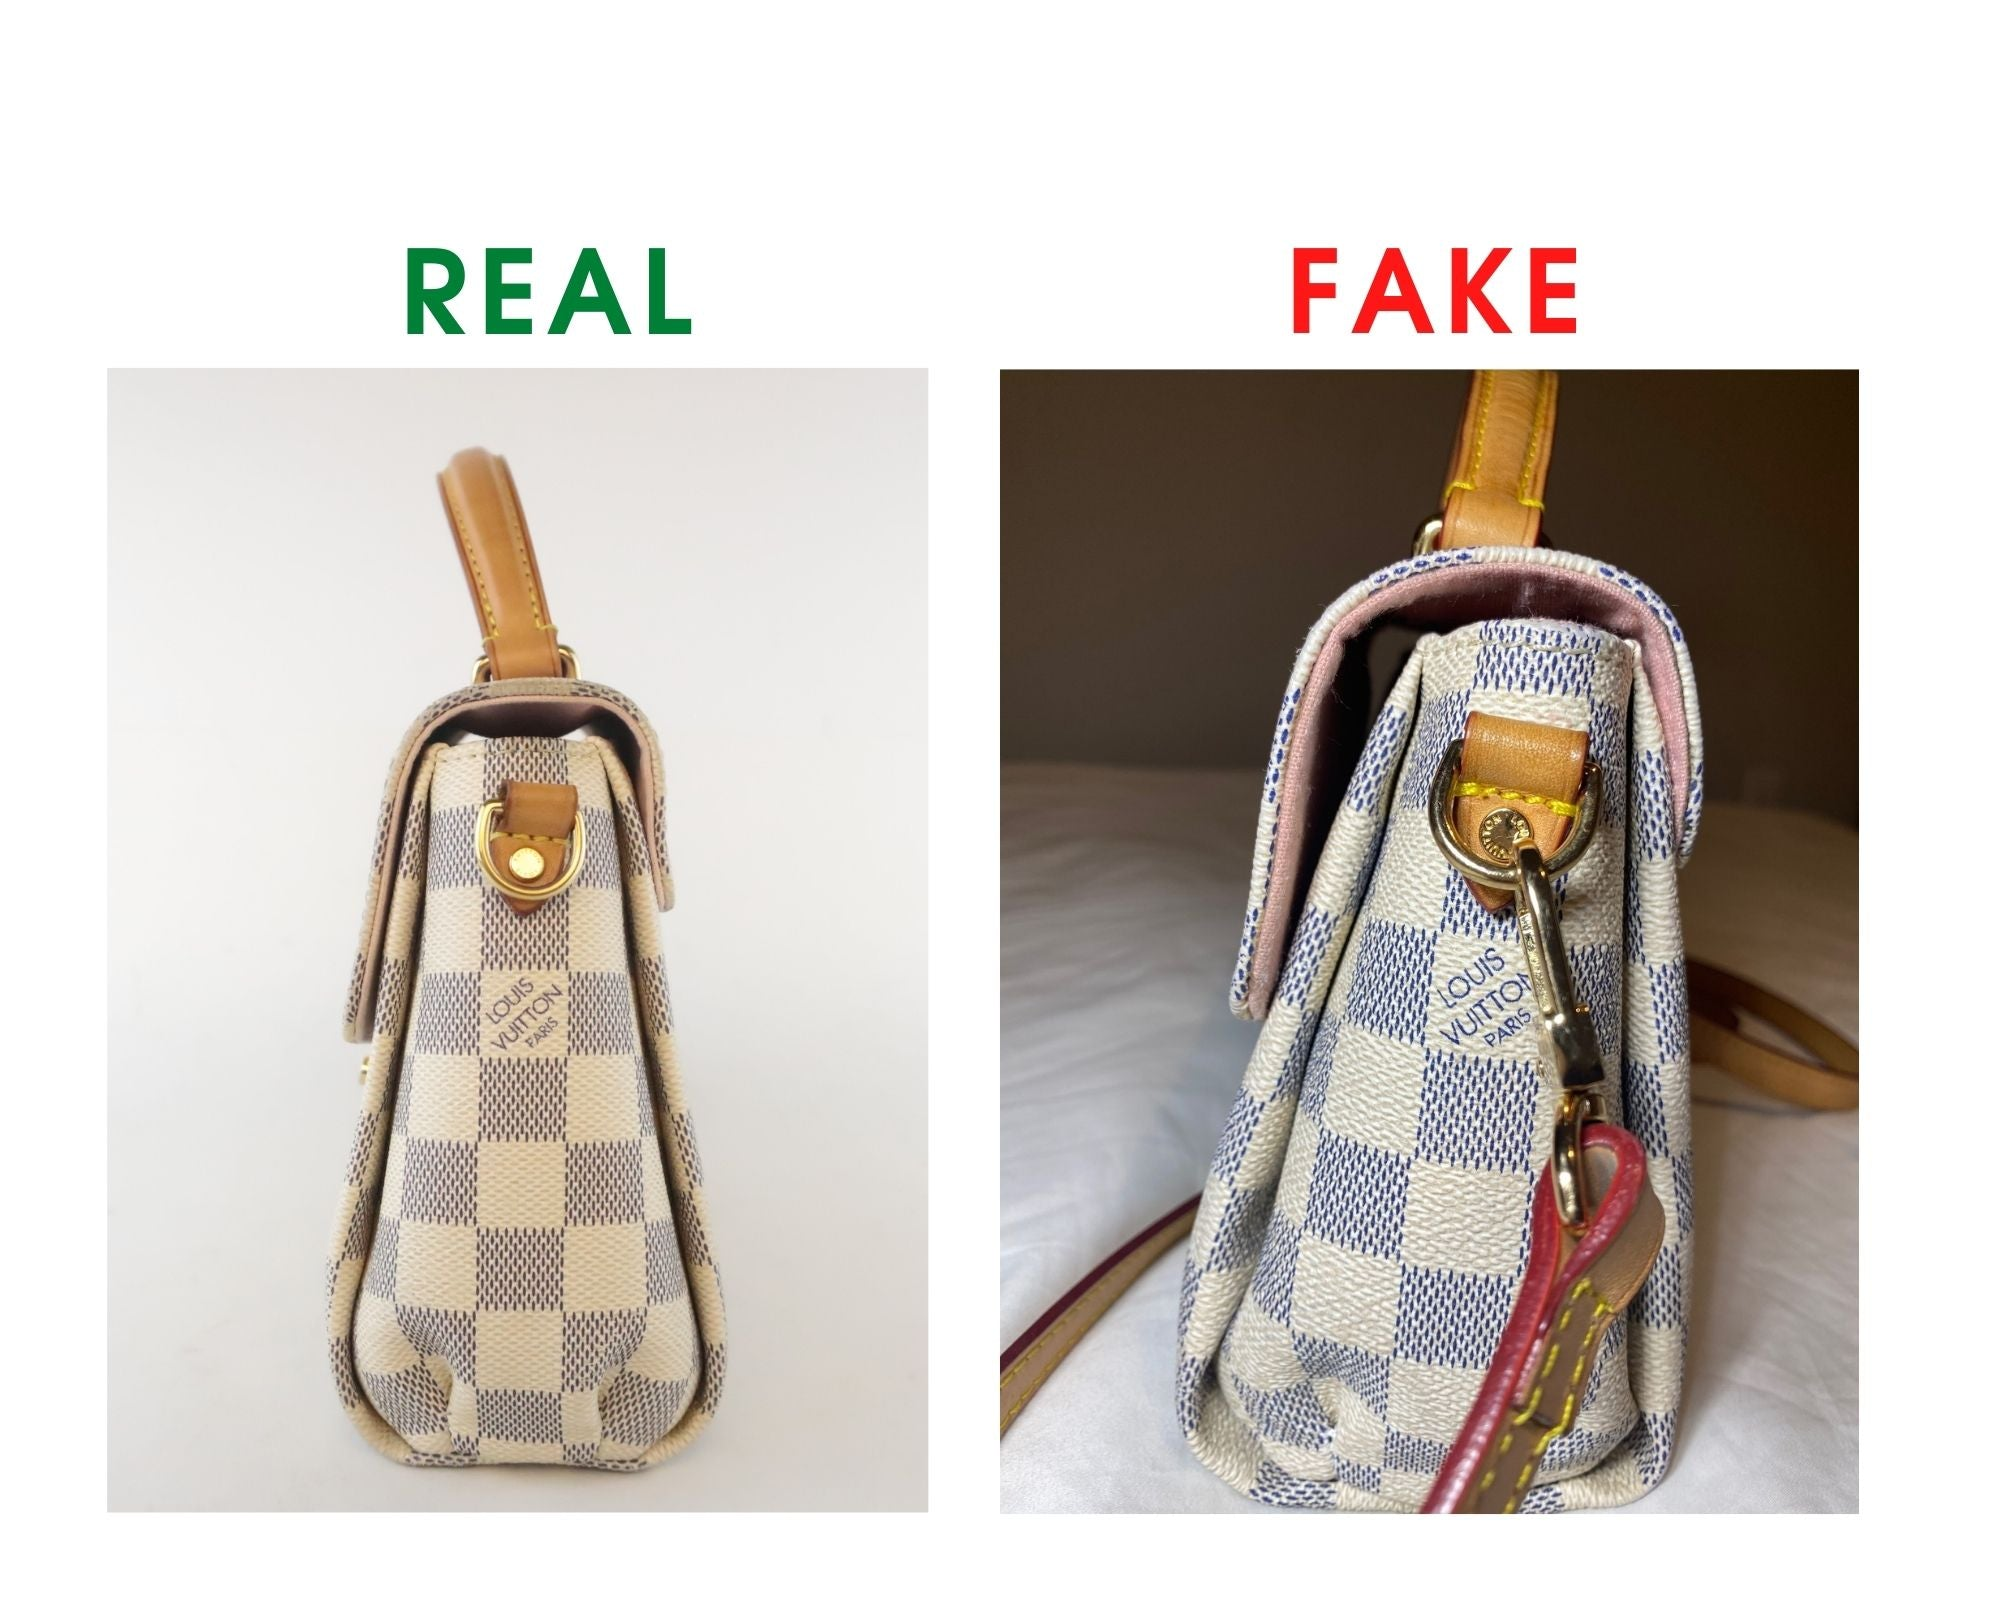 Louis Vuitton Croisette Bag Review and Real vs Fake Comparison (With Real Photos) leather buckle